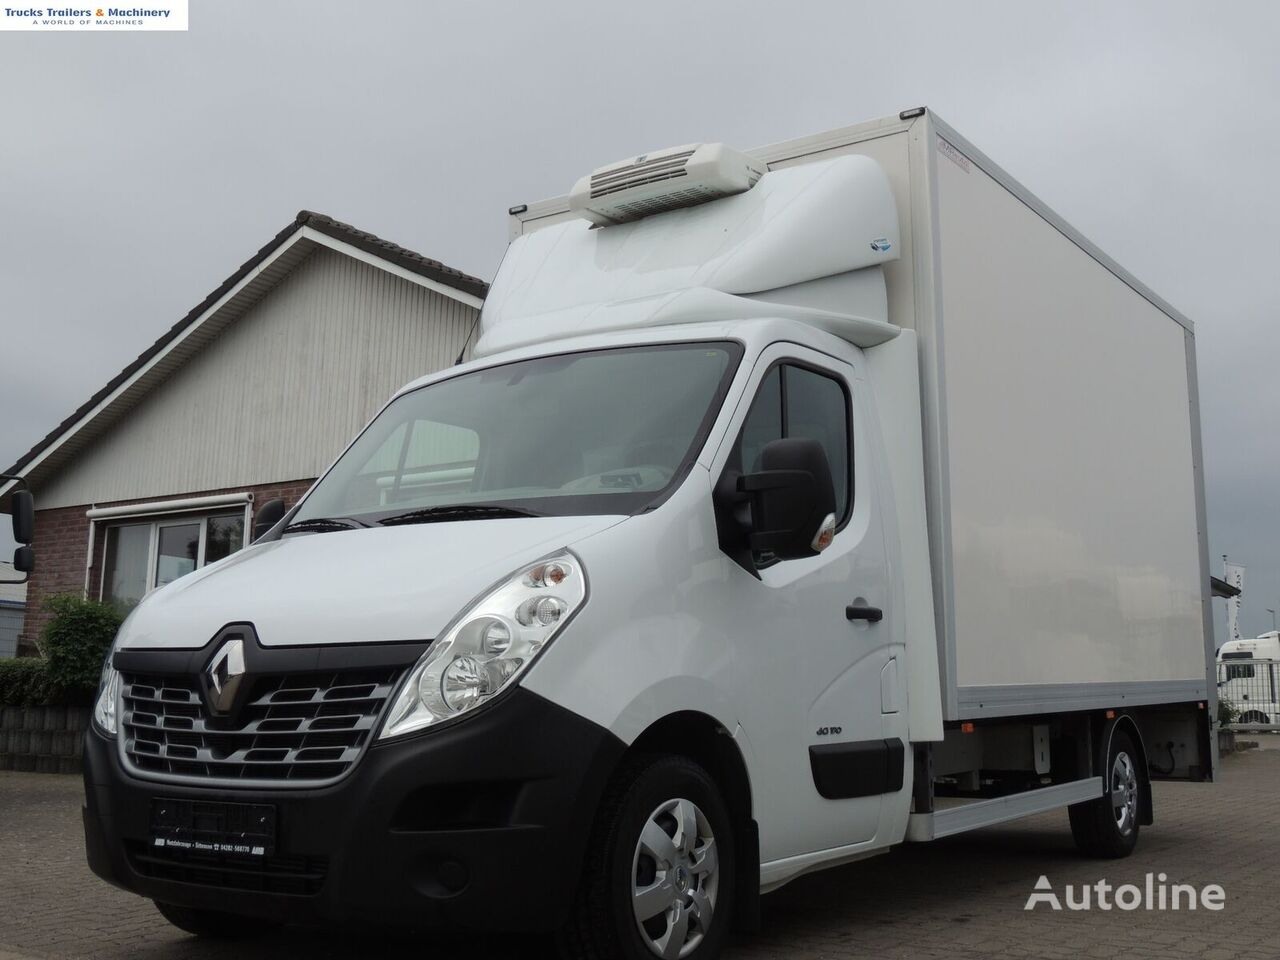 RENAULT Master 3.5 refrigerated truck < 3.5t